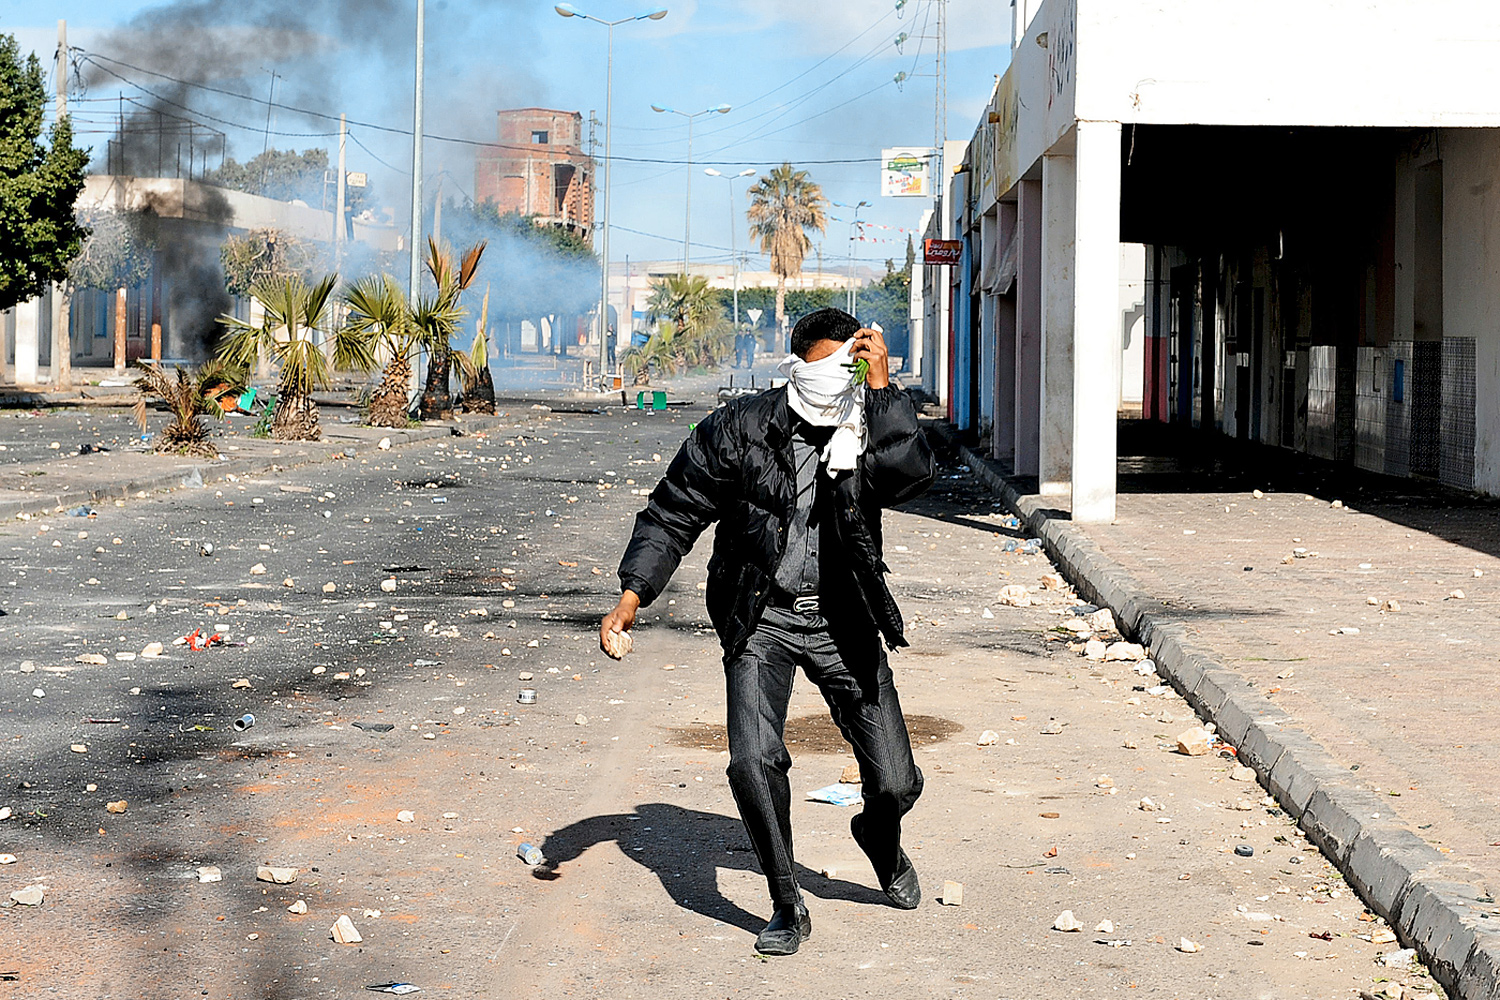 January 10, 2011. A Tunisian demonstrator covers his face as he holds a rock during clashes with security forces in Regueb.